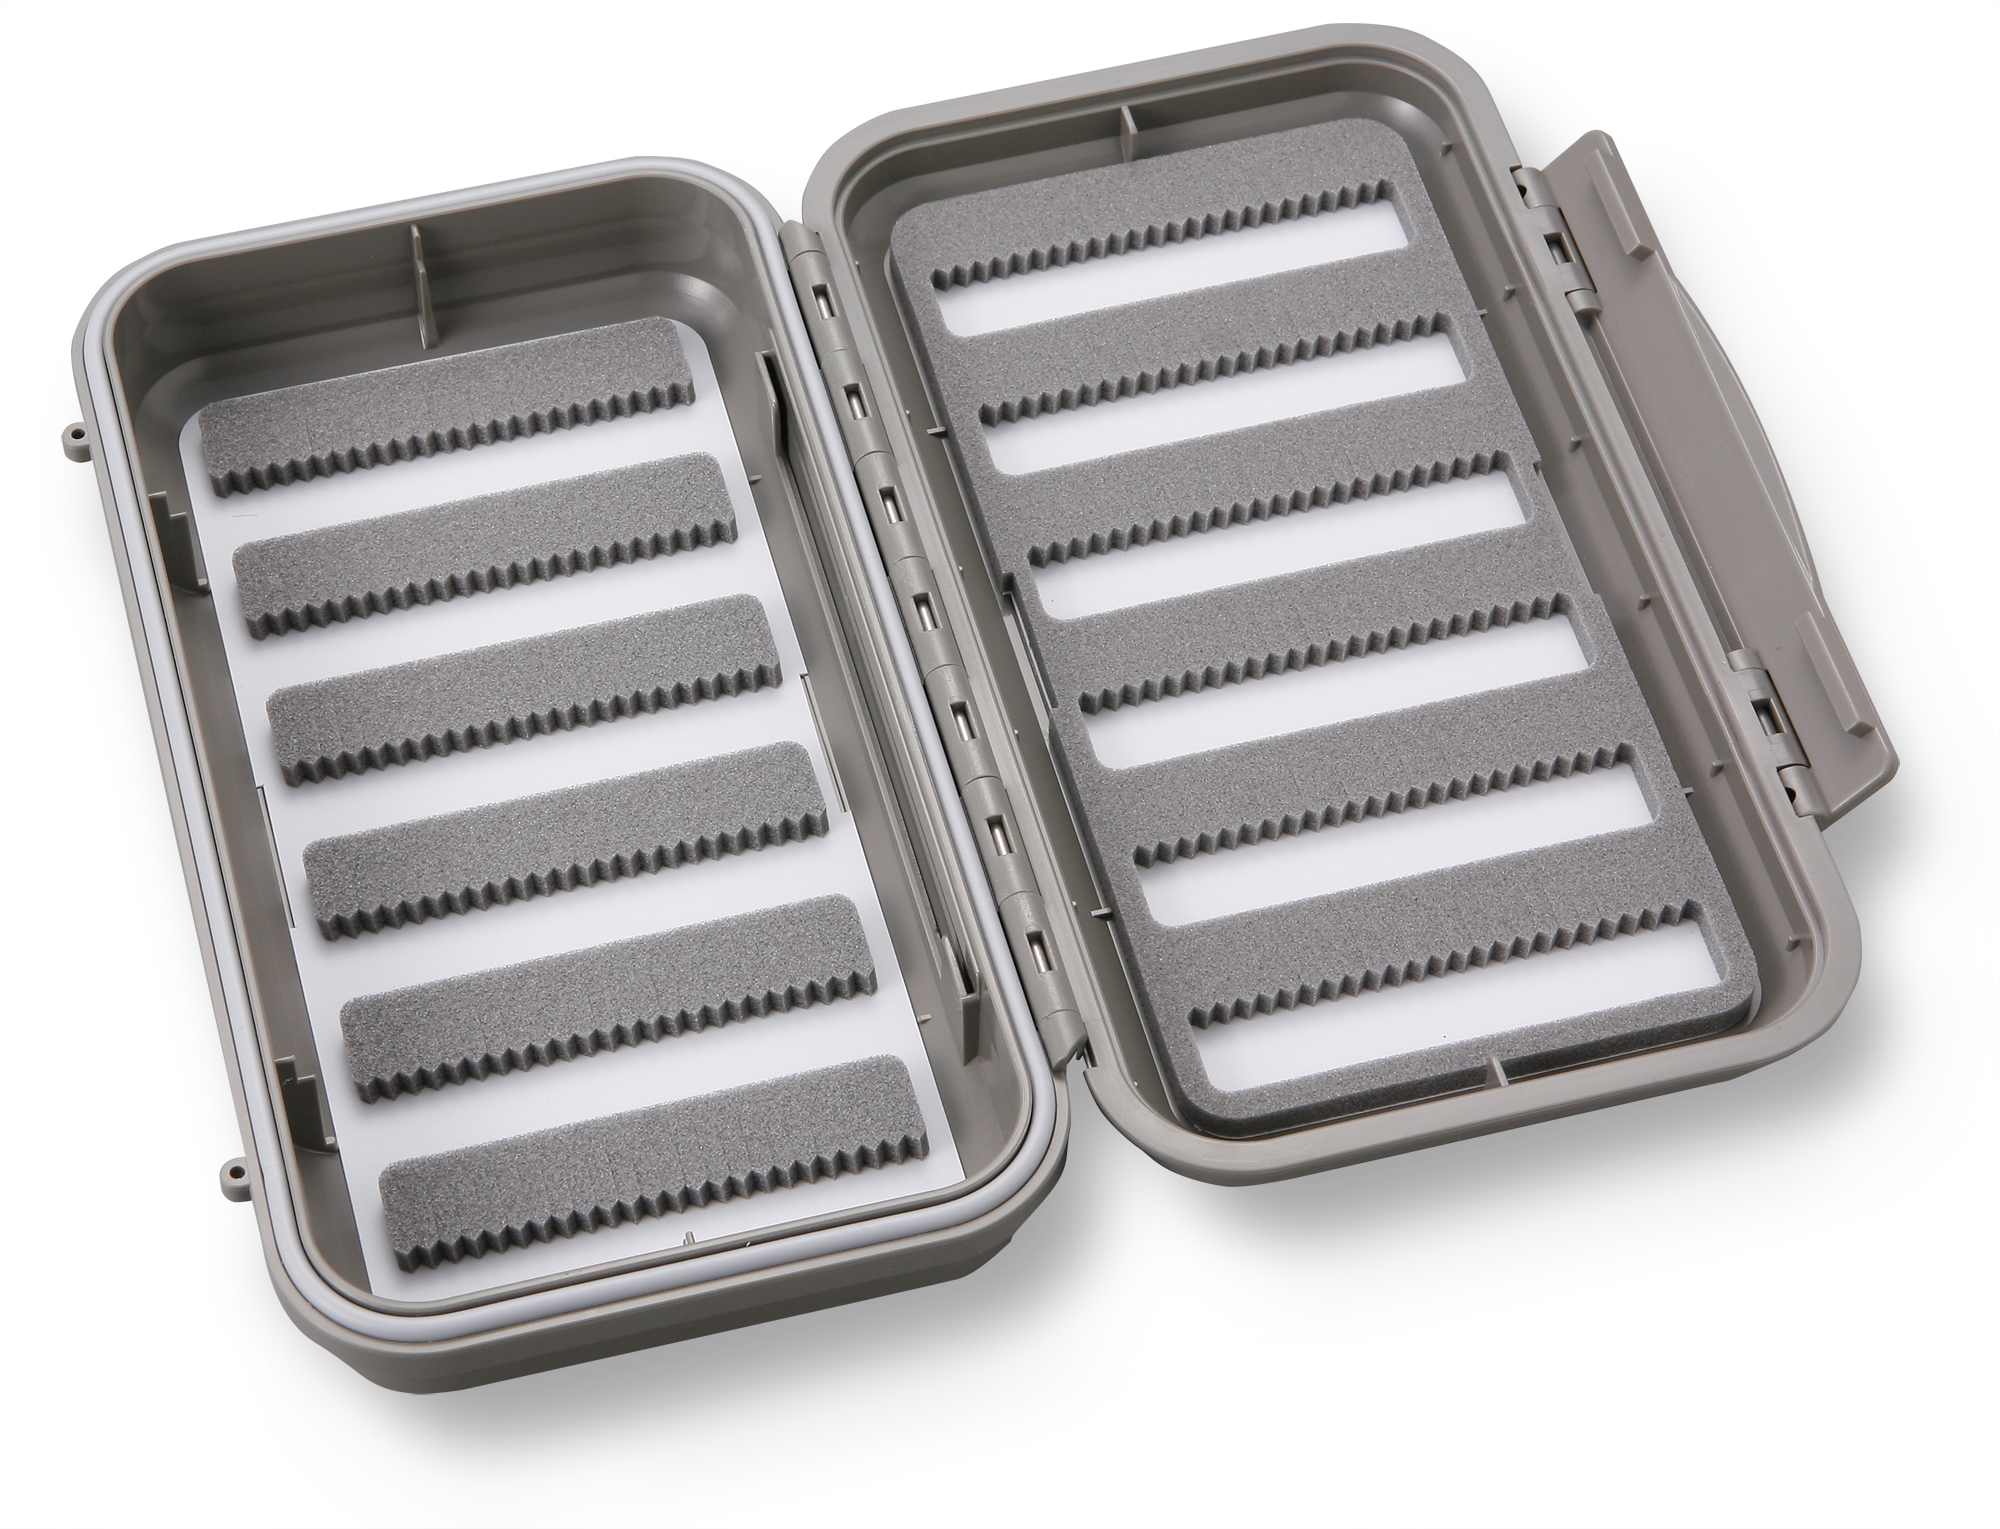 Large 12-Row Waterproof Fly Box